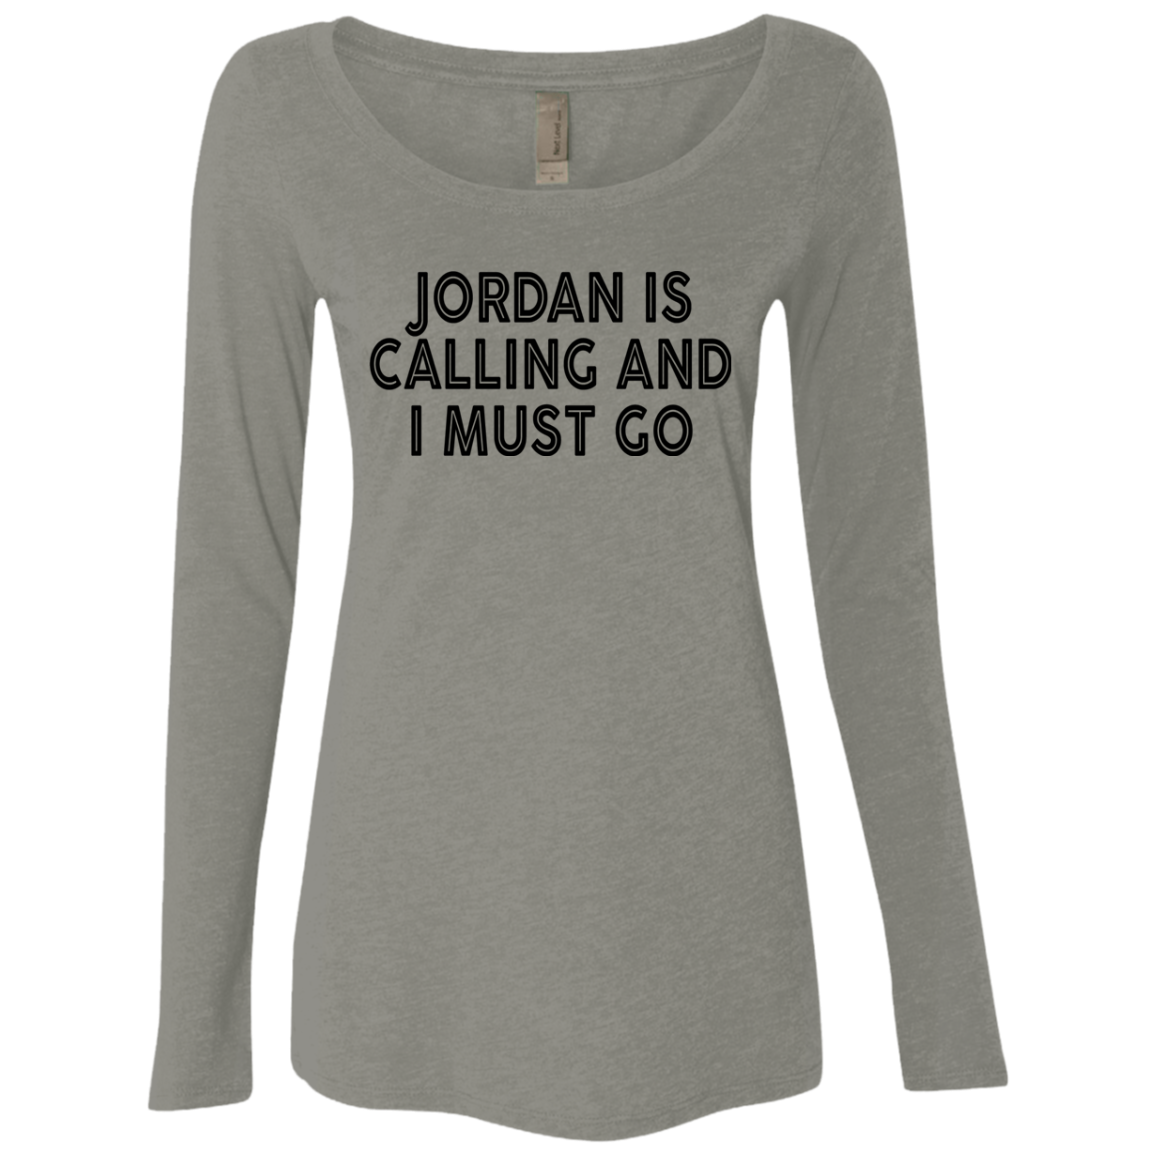 Jordan Is Calling And I Must Go Women's Long Sleeve Tee